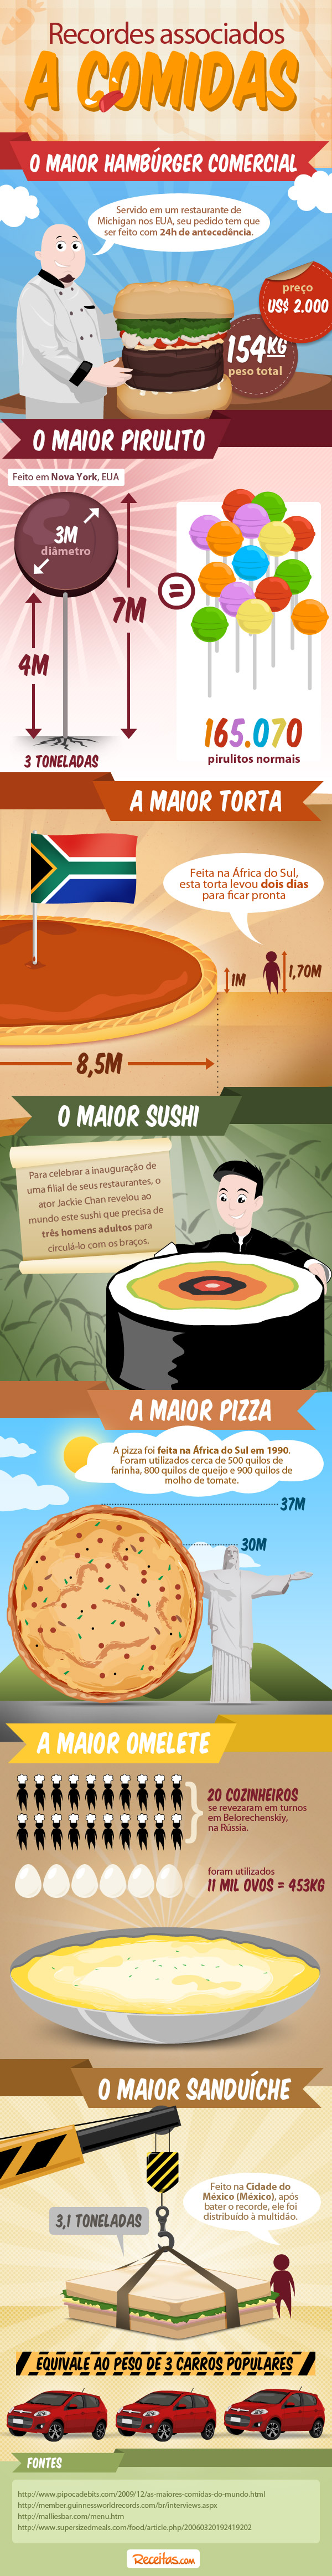 Infogrfico das maiores comidas do mundo